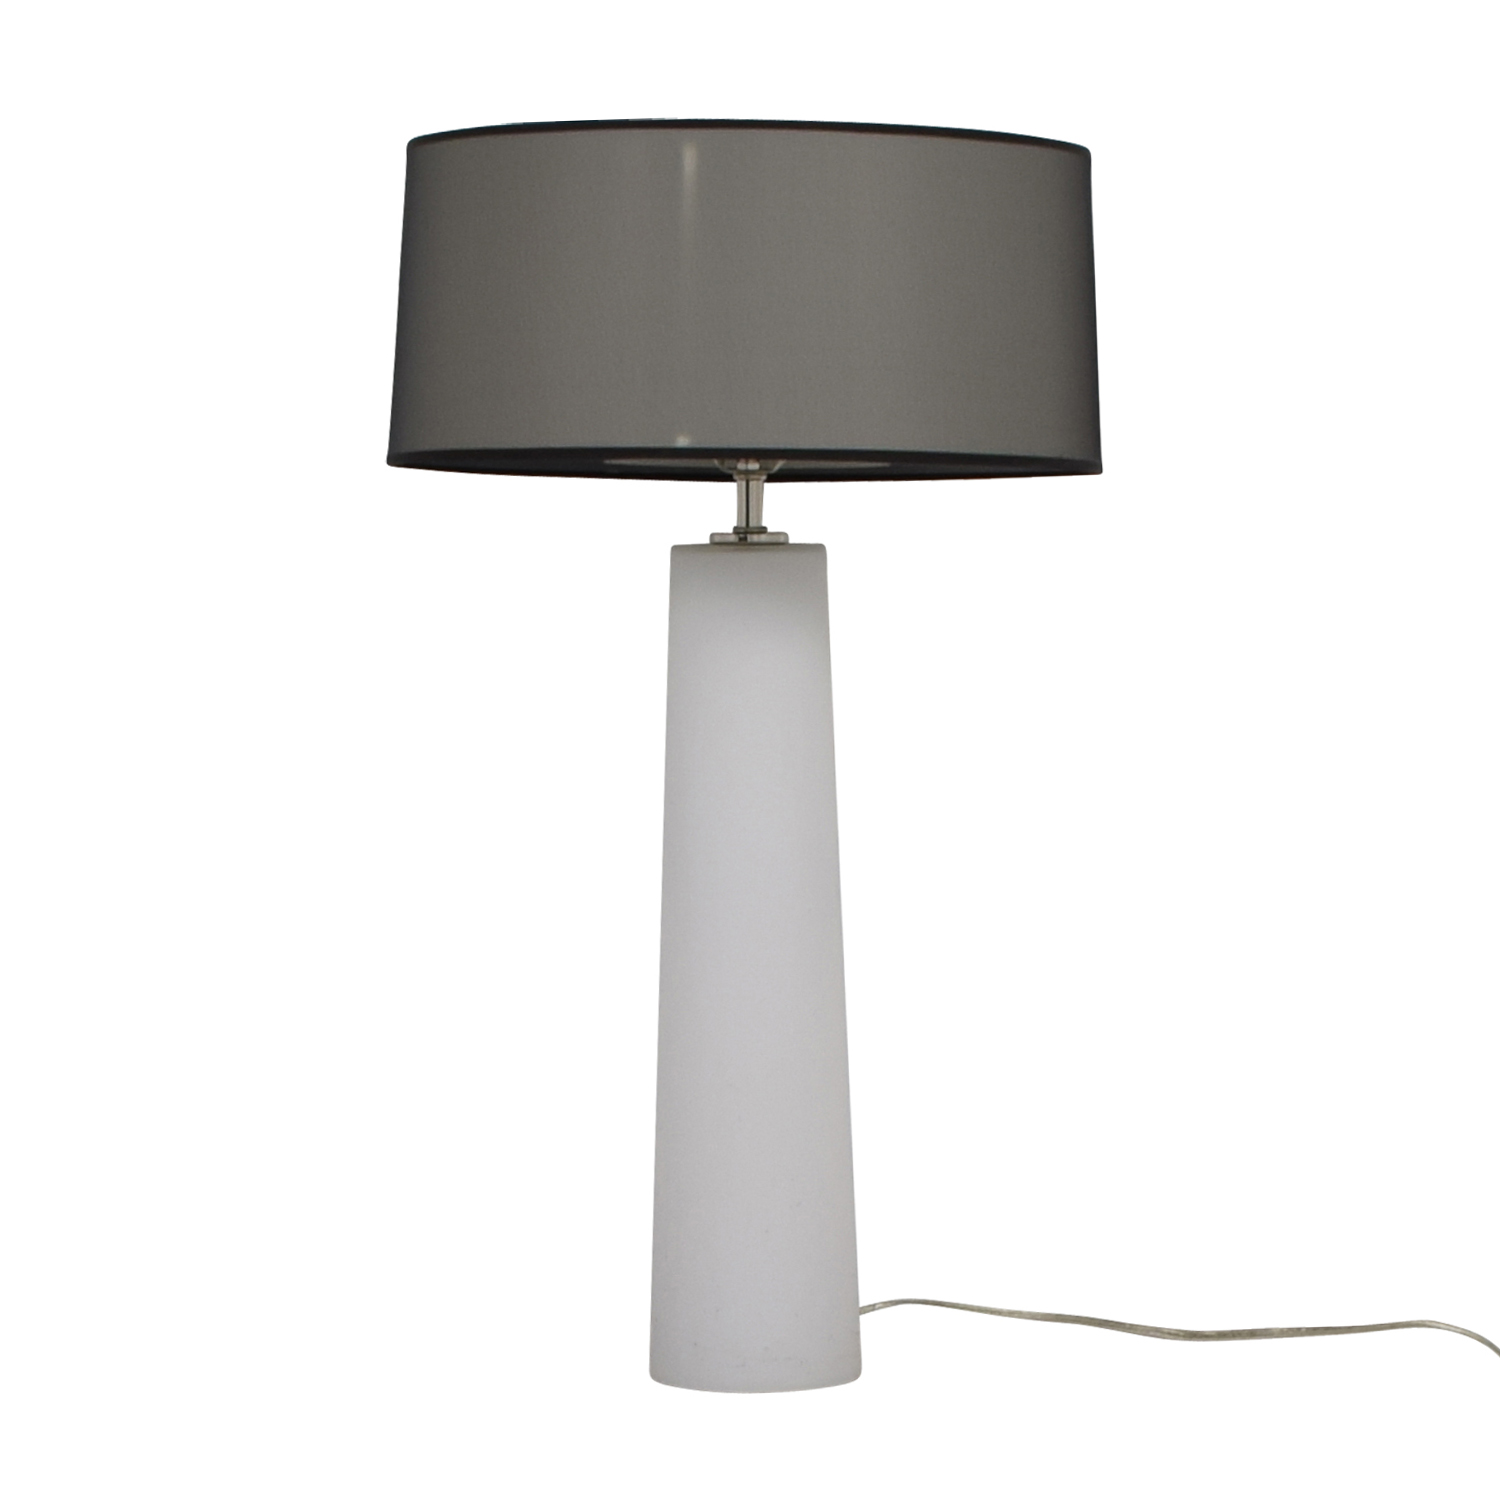 buy White Bedside Lamp With Base and Top Lighting